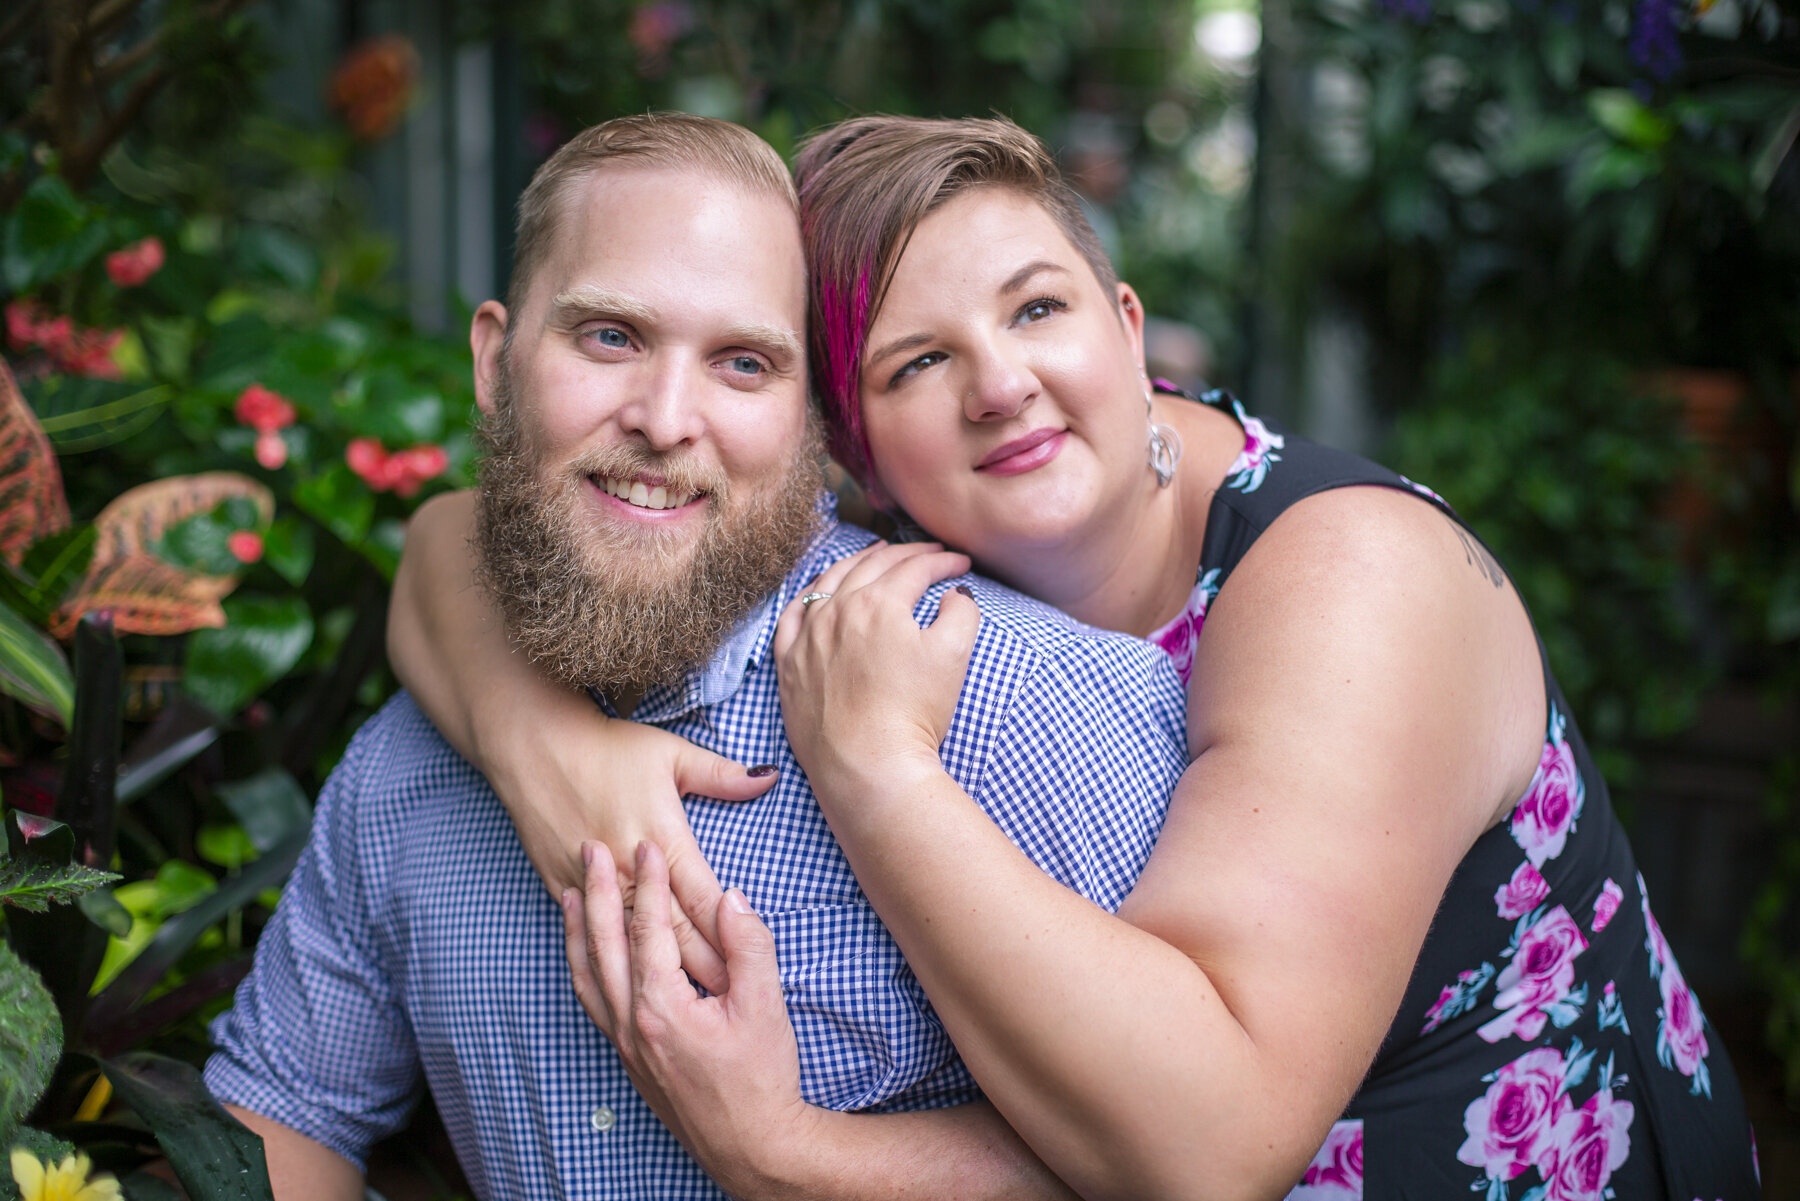 Jessica and Derek Engagement photos 2019_photos by Studio Misha_BLOG-51.jpg